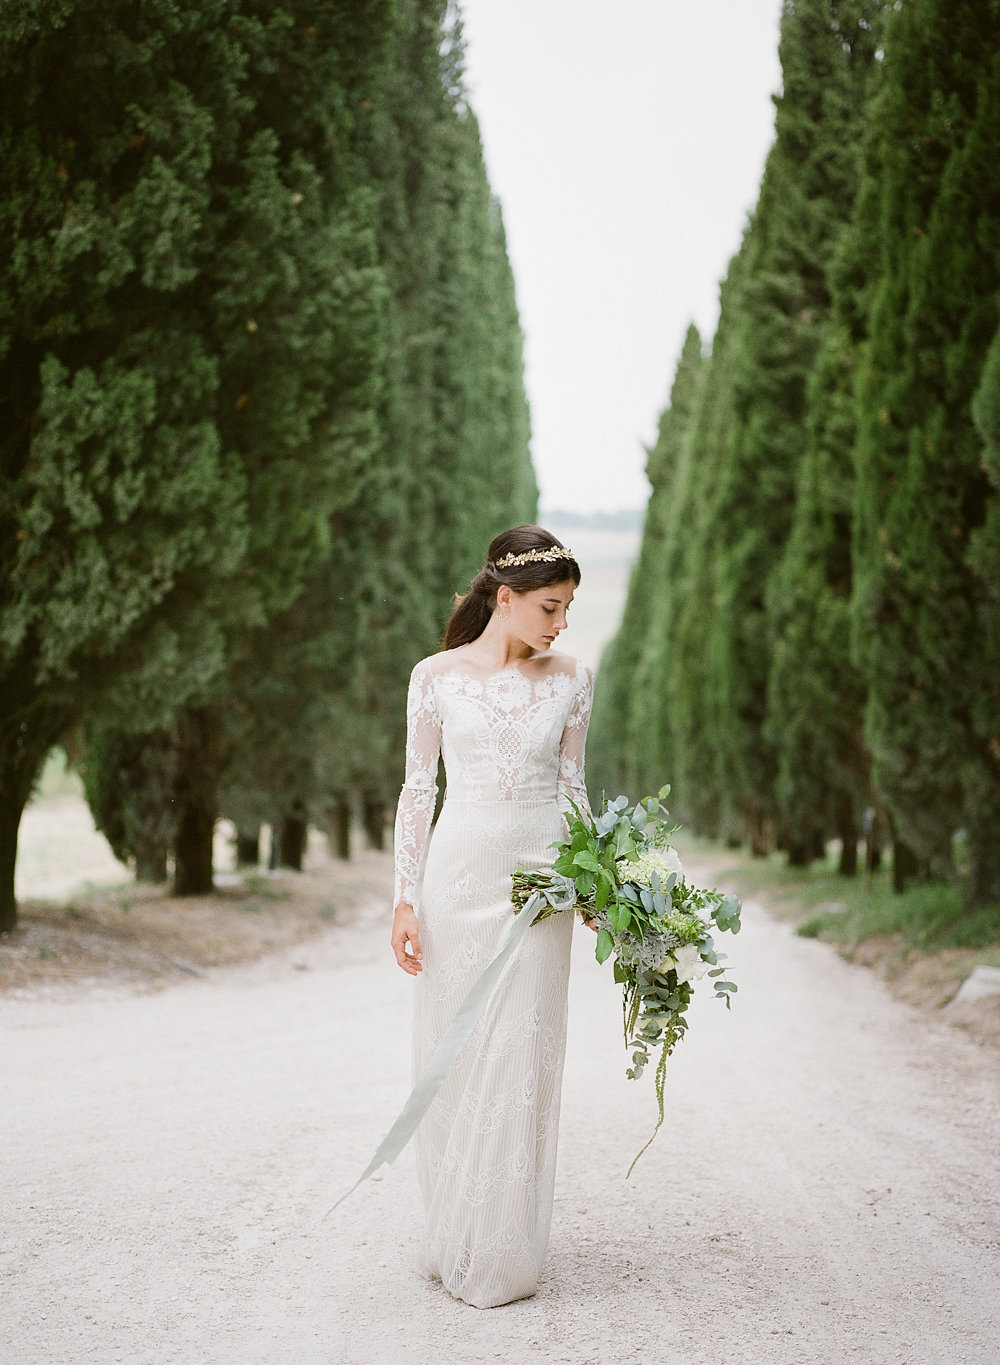 Italian Garden Wedding Inspiration | Credit: Magnolia & Magpie Photography